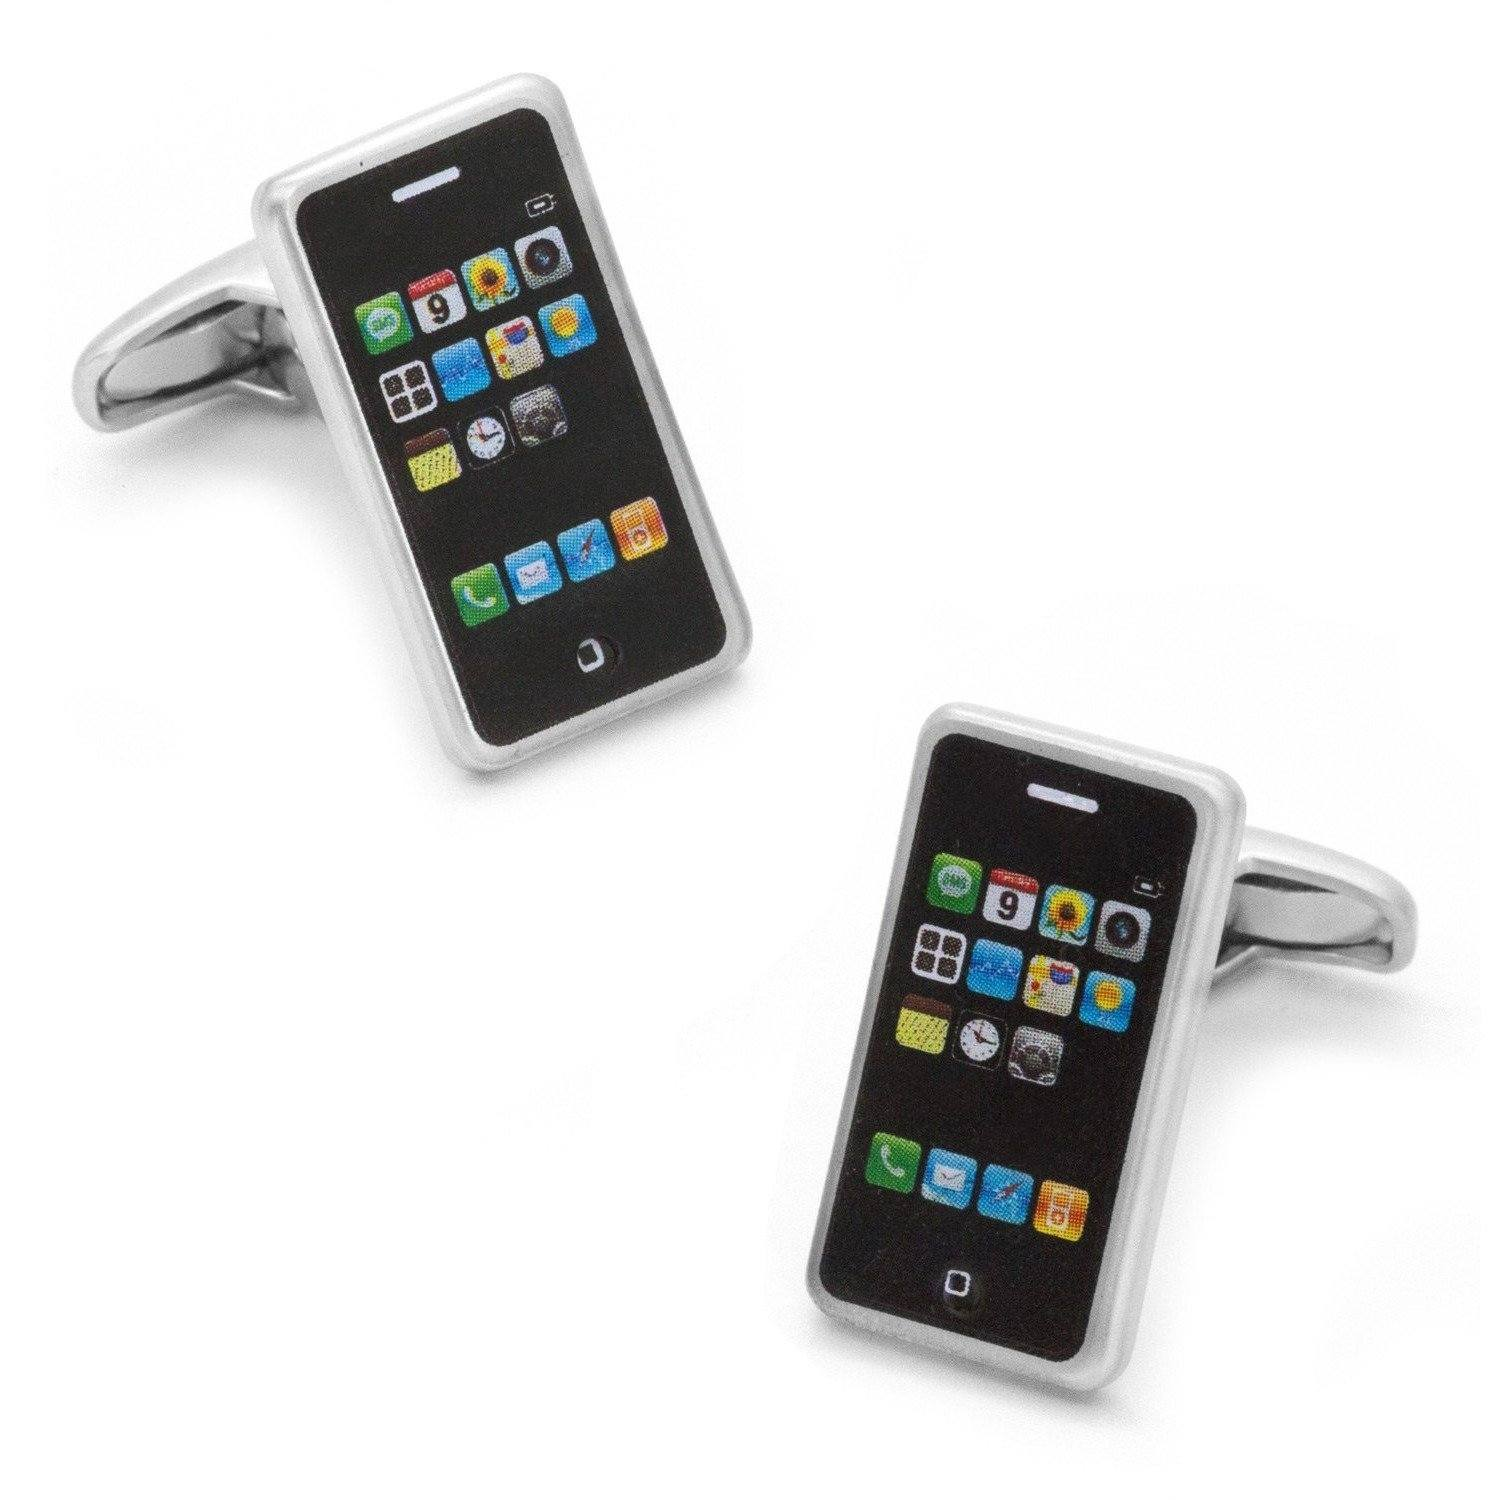 iPhone Mobile Phone Brushed Silver Cufflinks Novelty Cufflinks Clinks Australia iPhone Mobile Phone Brushed Silver Cufflinks